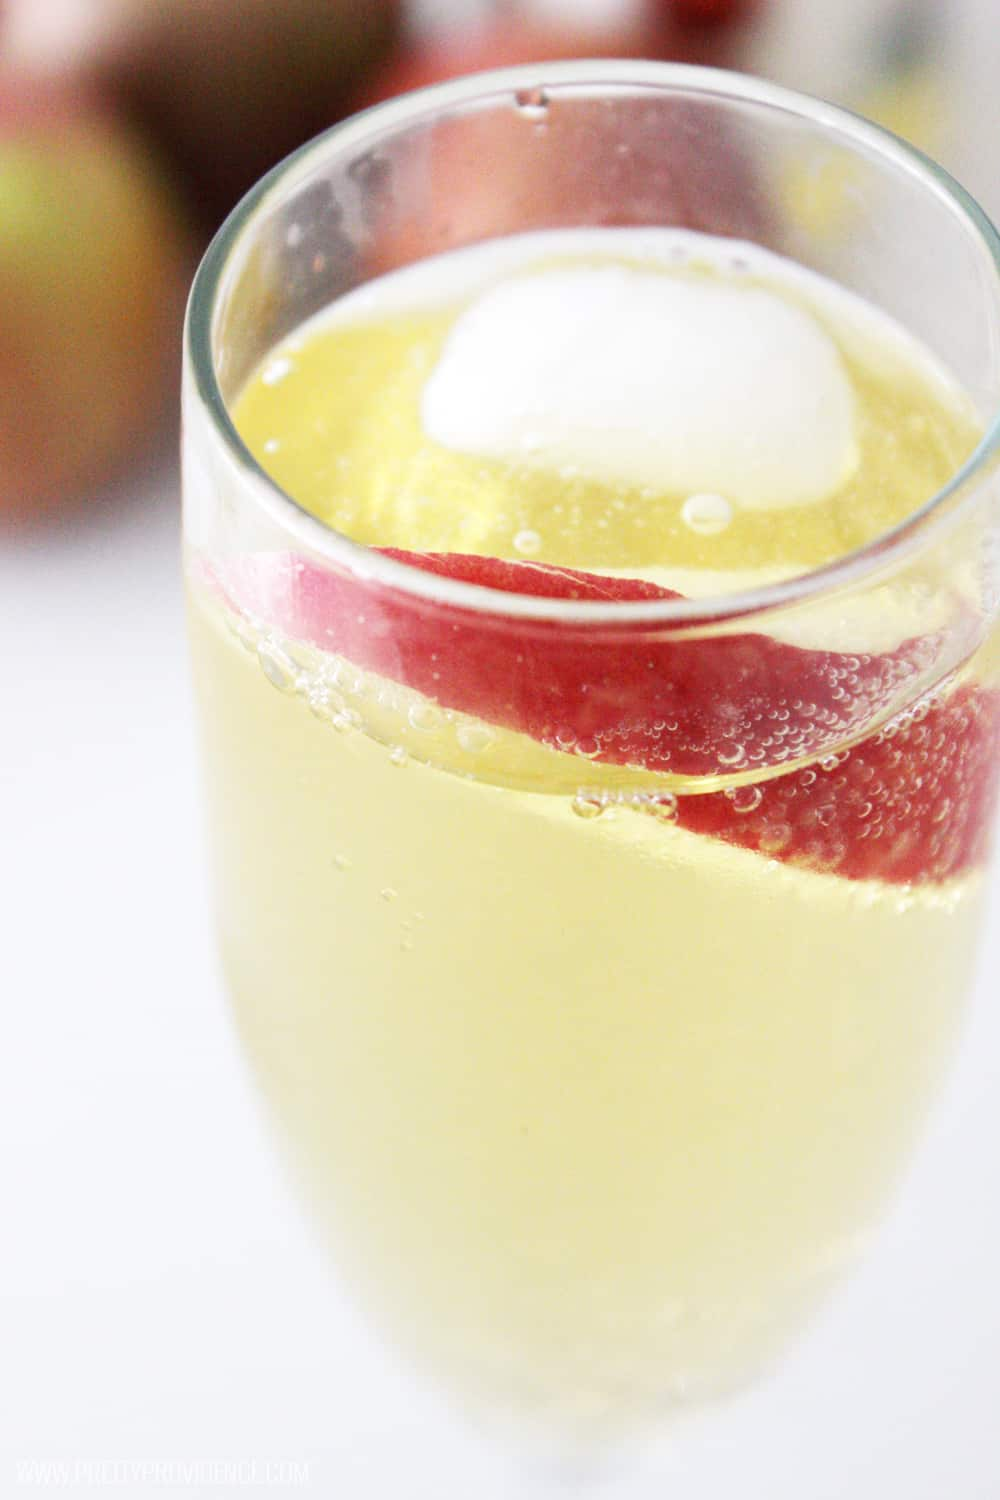 close up view of a glass of sparkling apple cider with apple slice to garnish